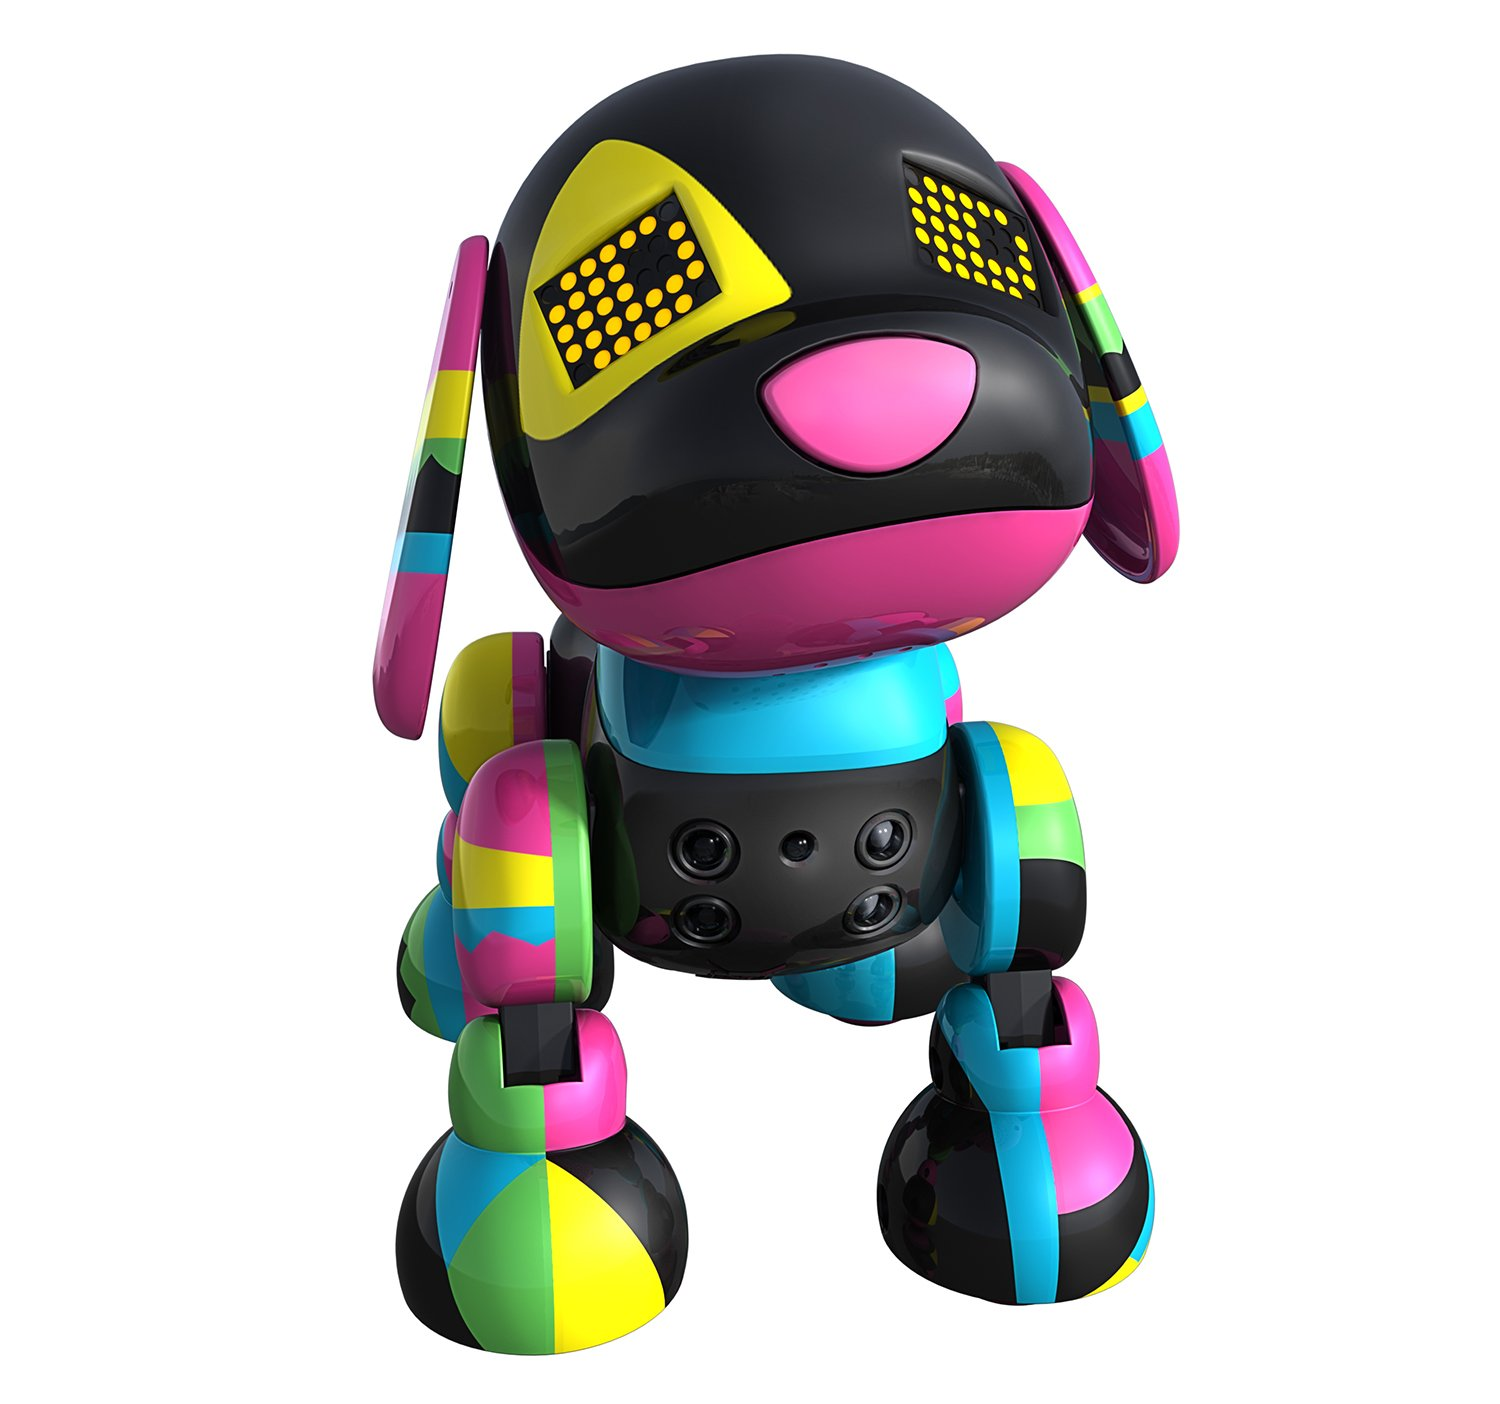 Zoomer Zuppies Roxy Robotic Puppy Amazon Toys & Games